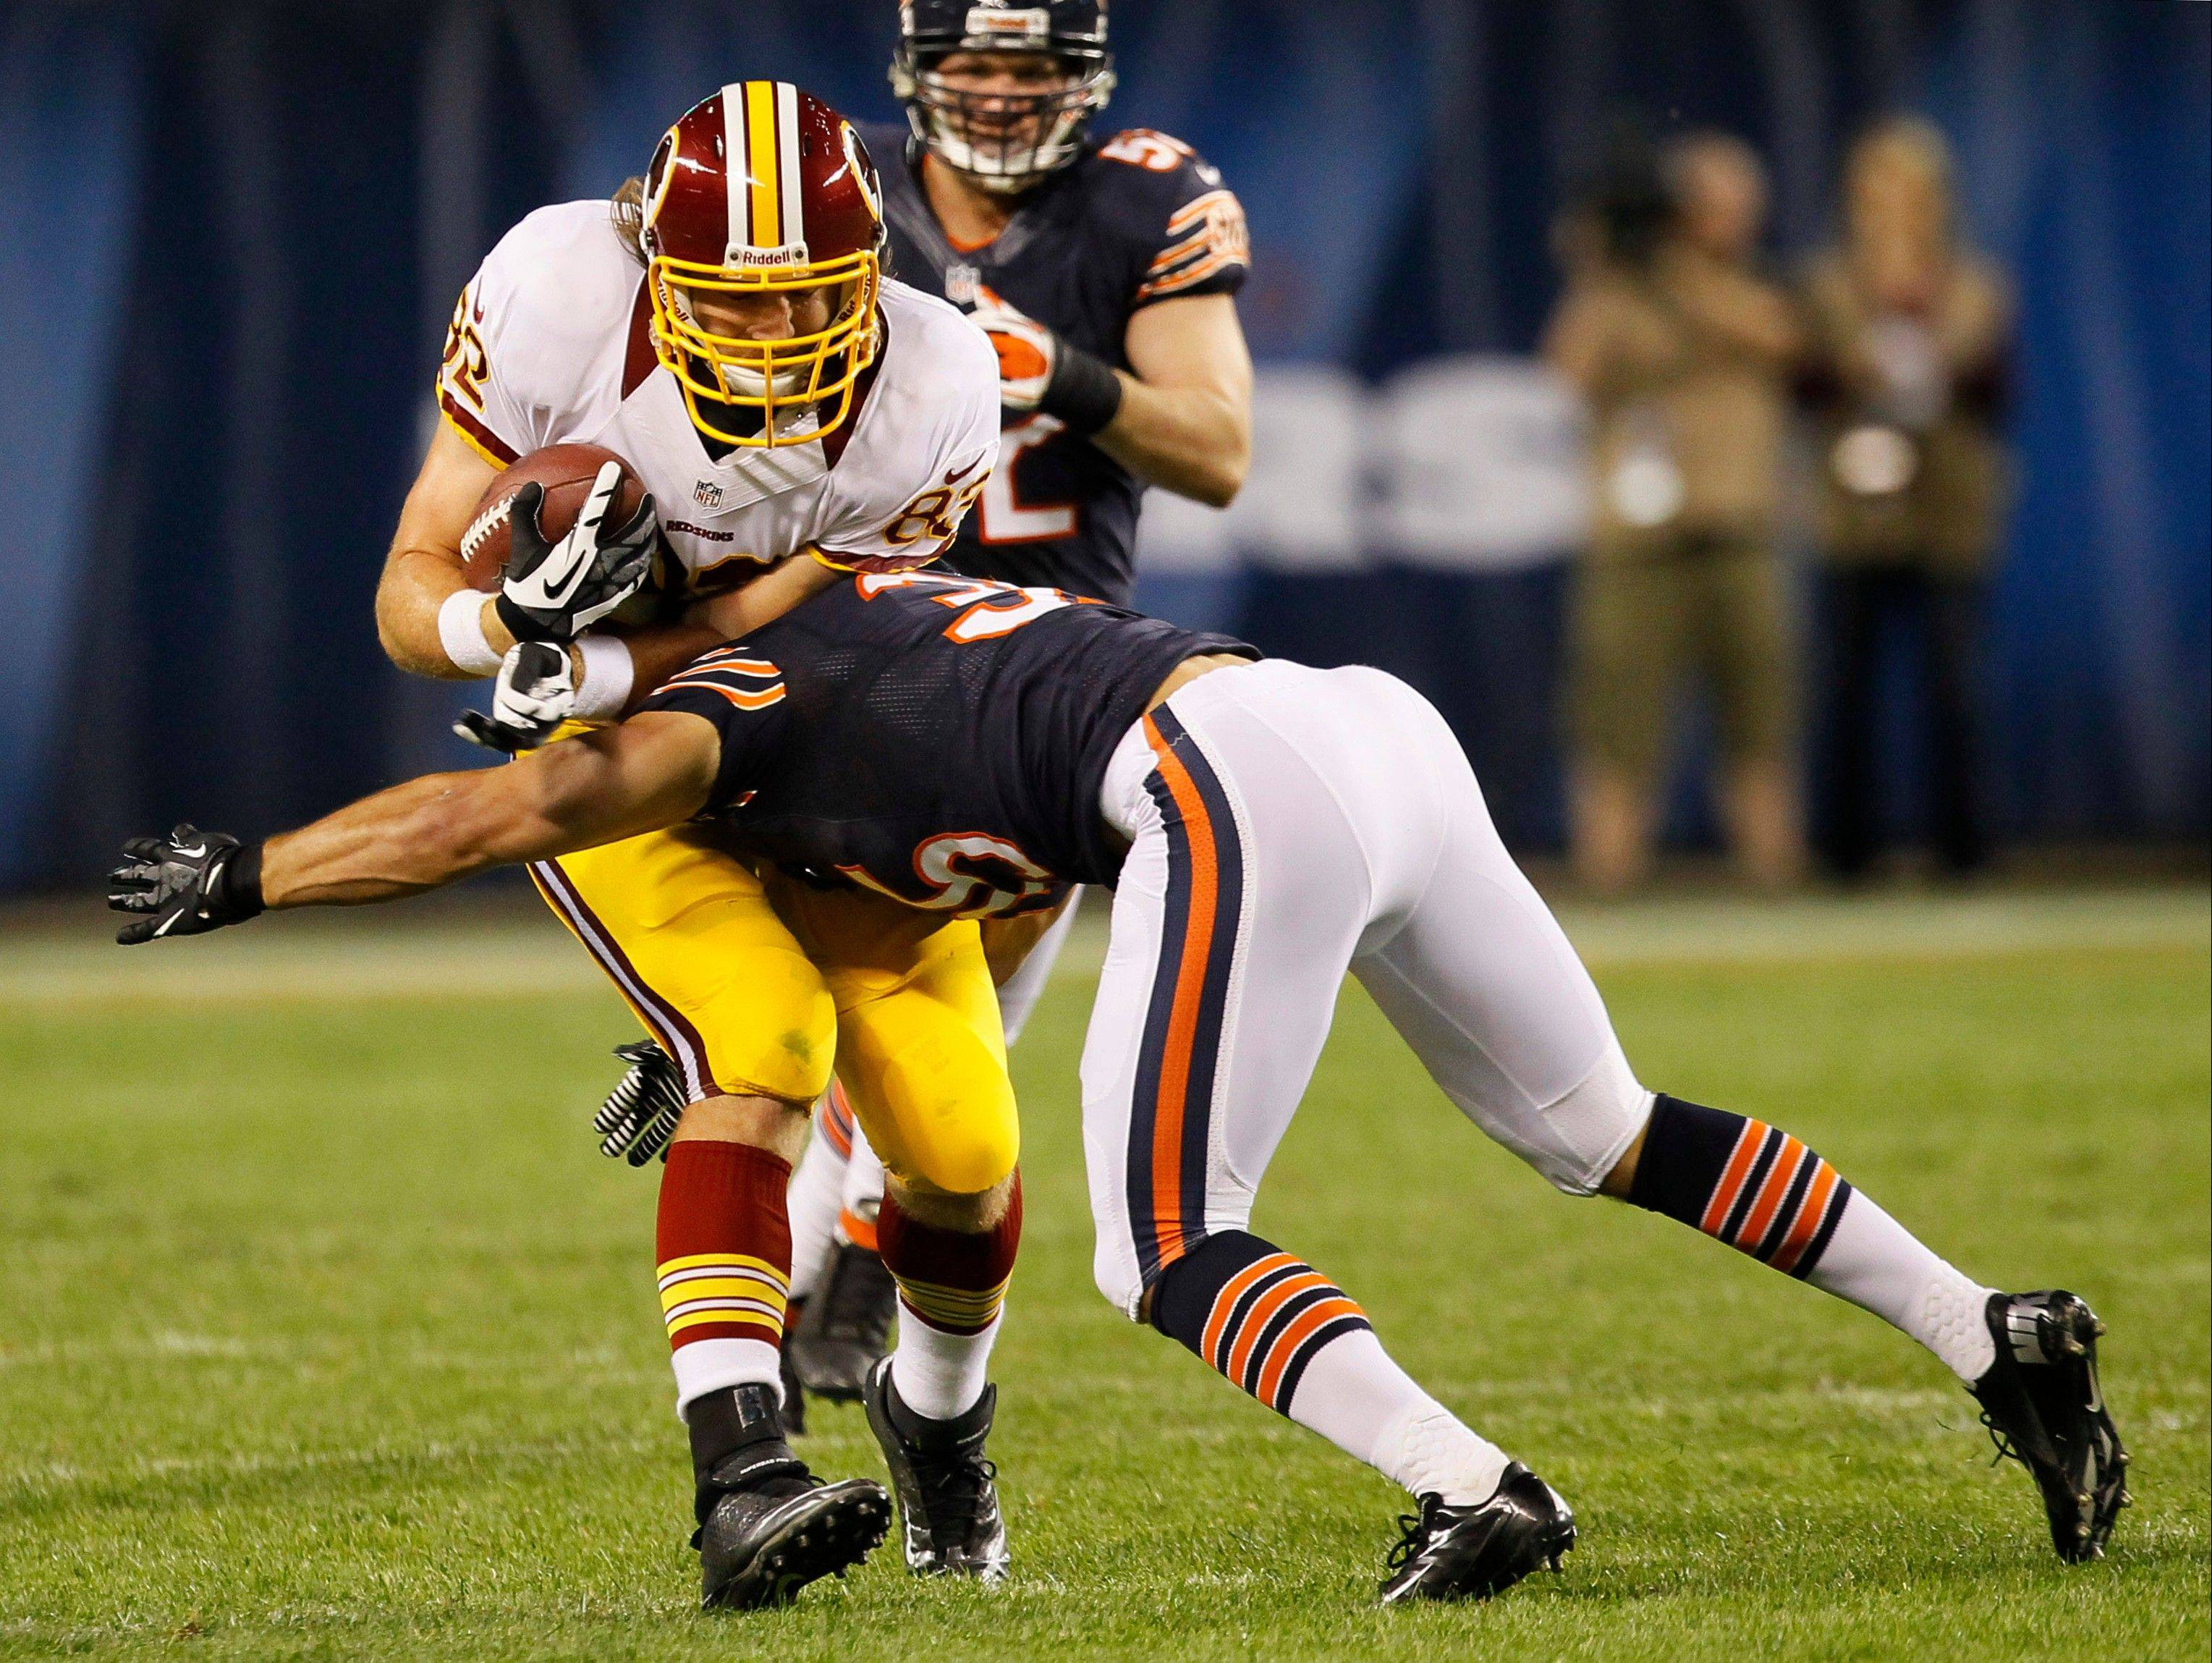 Brandon Hardin tackles Redskins tight end Logan Paulsen during the second half of the Bears' preseason win Saturday at Soldier Field. Hardin, the team's third-round draft pick, was taken off the field on a stretcher after the play.